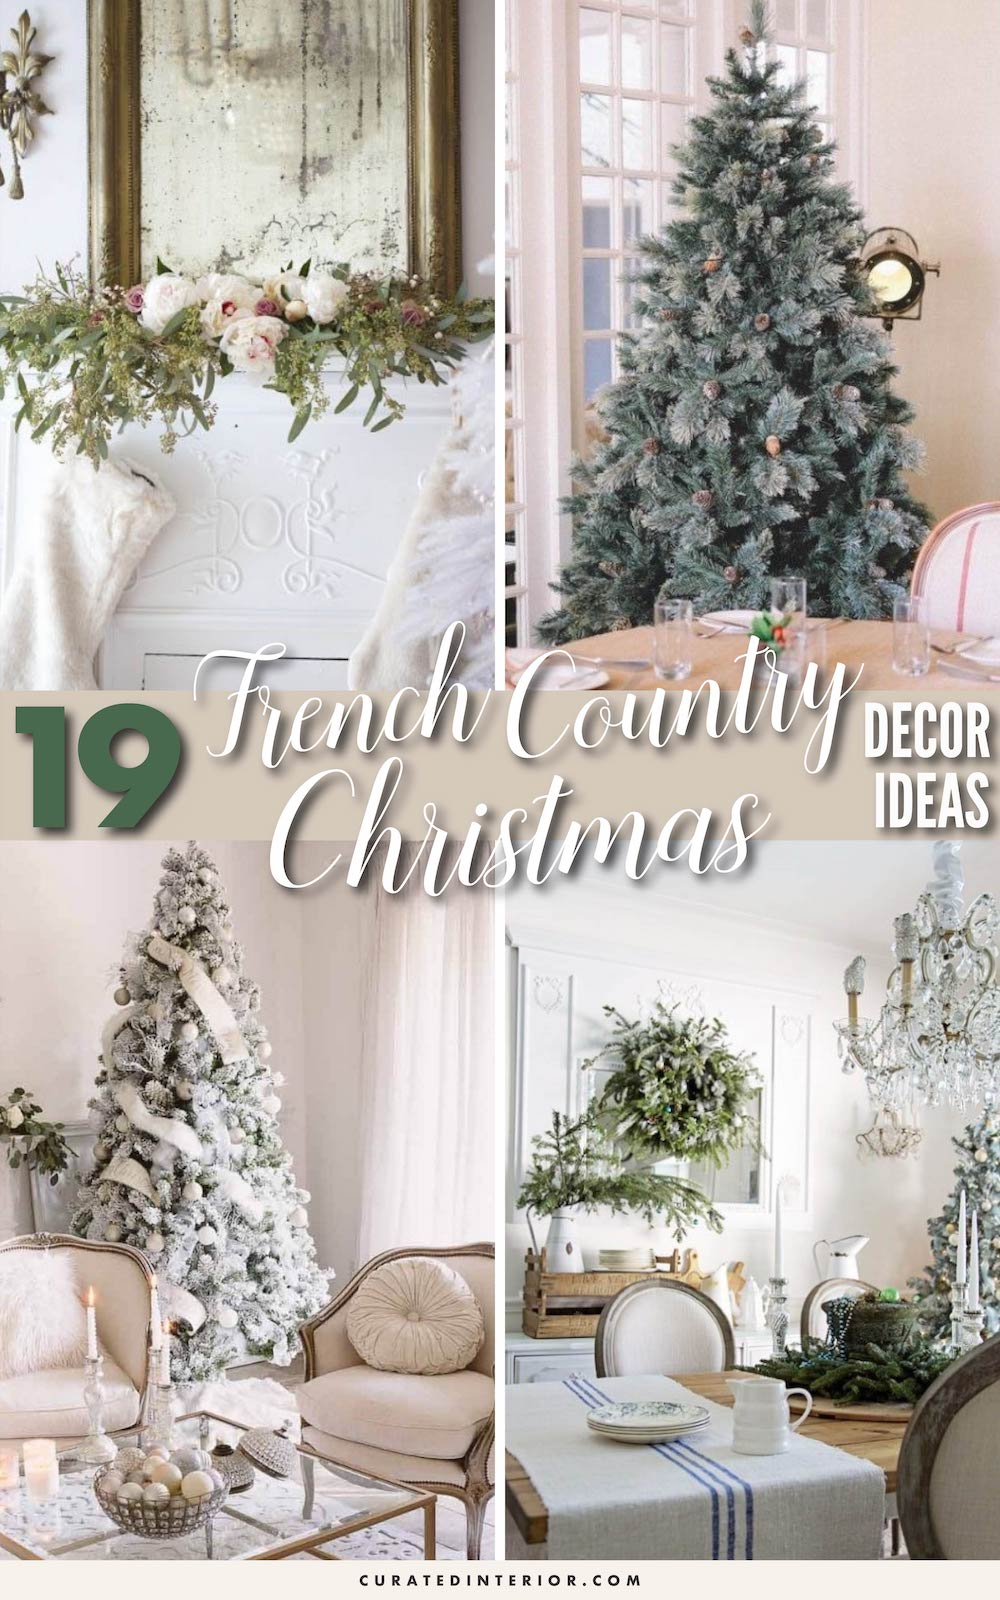 19 French Country Christmas Decor Ideas #FrenchCountry #FrenchChristmas #FrenchCountryDecor #ChristmasDecor